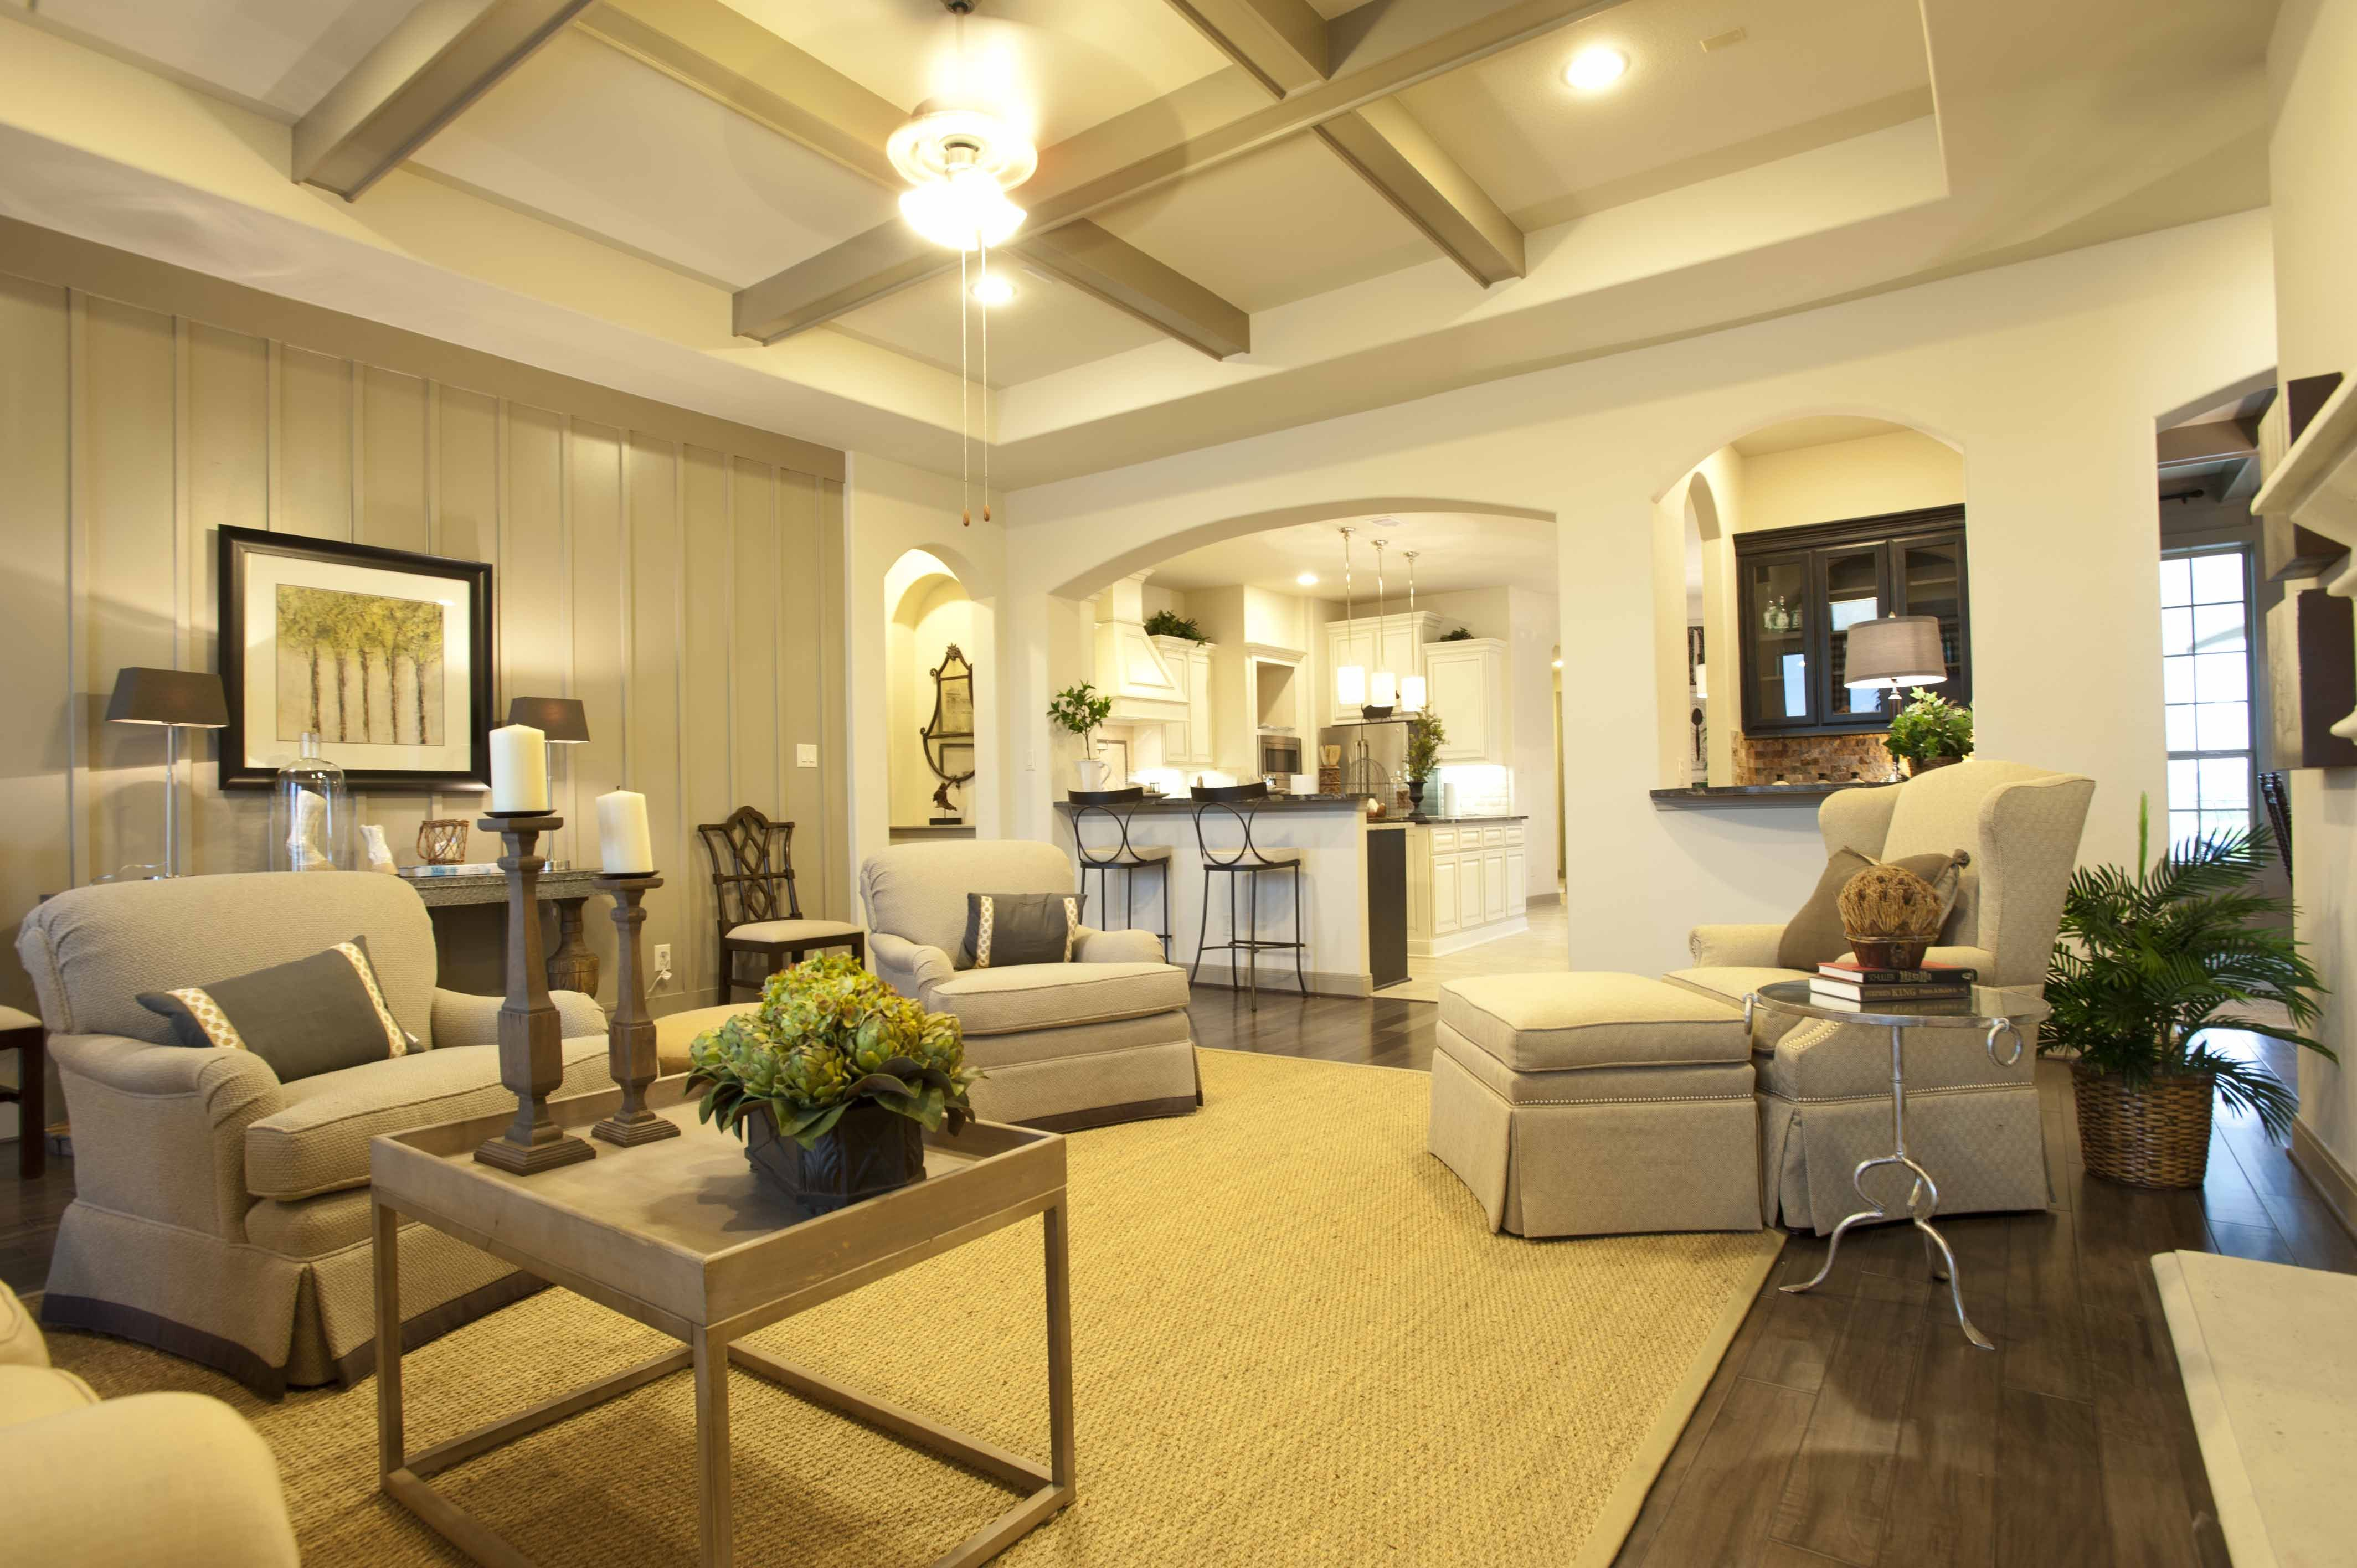 Model home furniture store katy tx